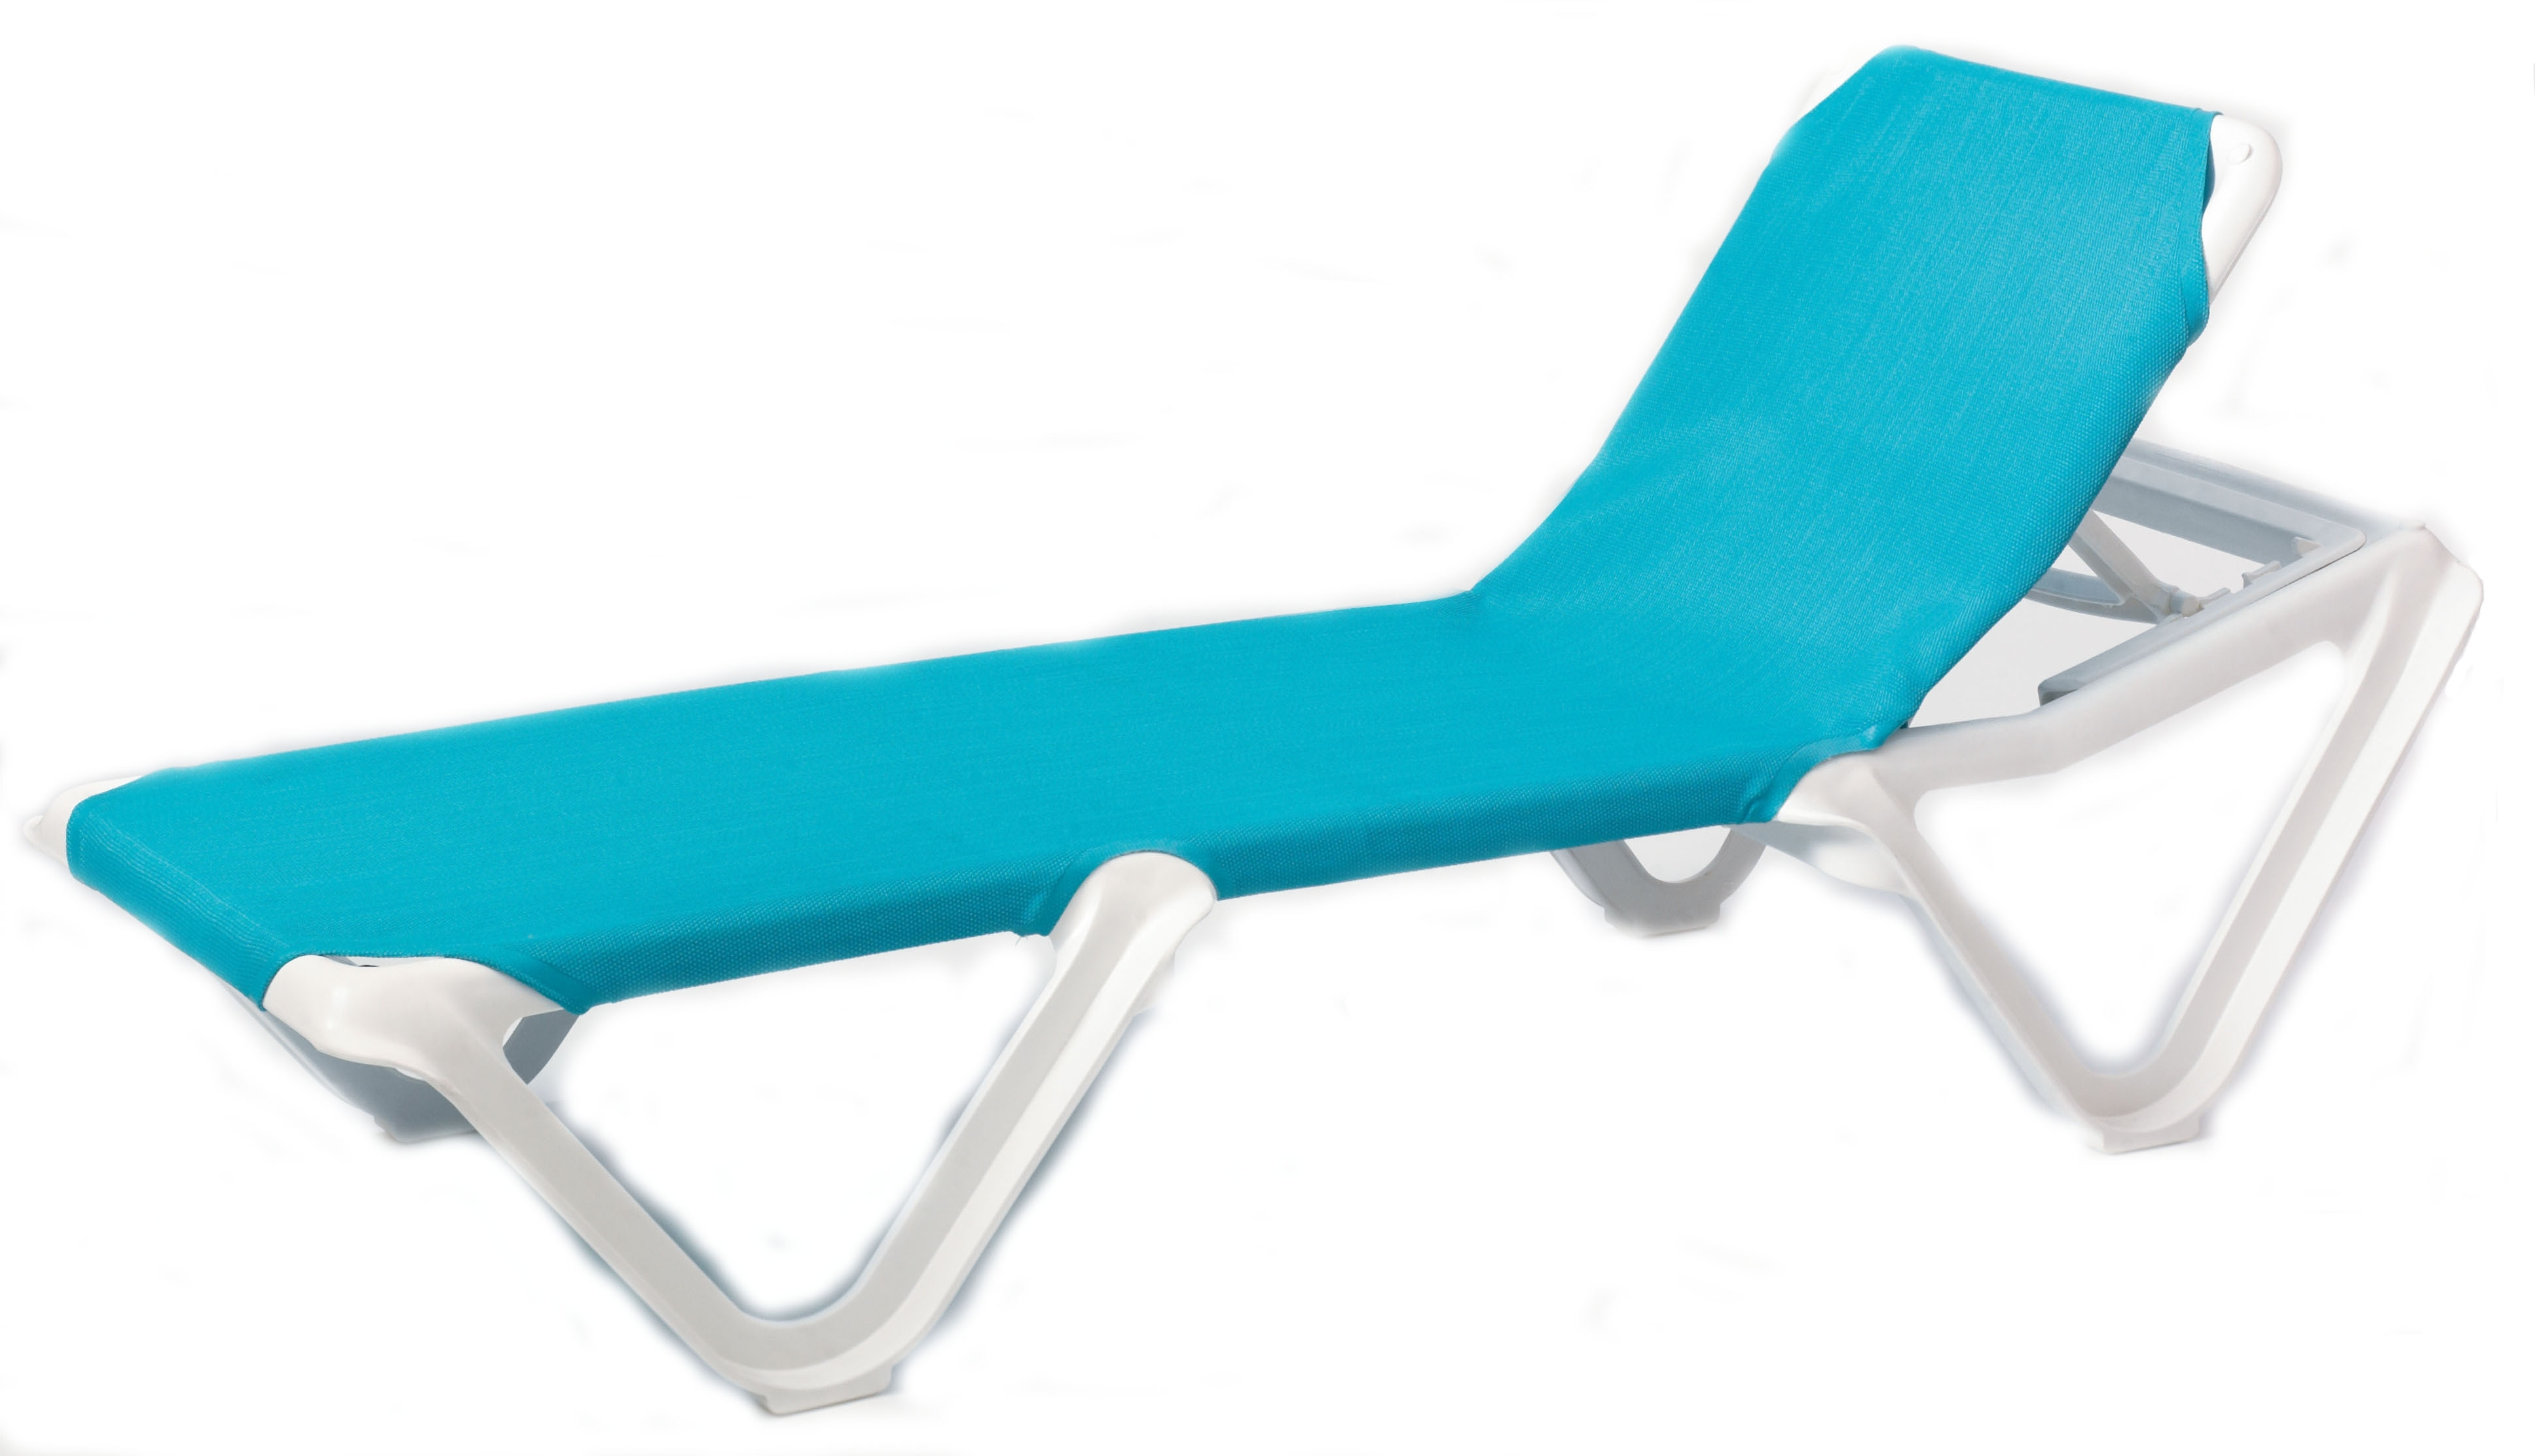 Commercial Outdoor Chaise Lounge Chairs Inside Favorite Grosfillex Nautical Adjustable Resin Sling Chaise Lounge Chair W/o (View 2 of 15)